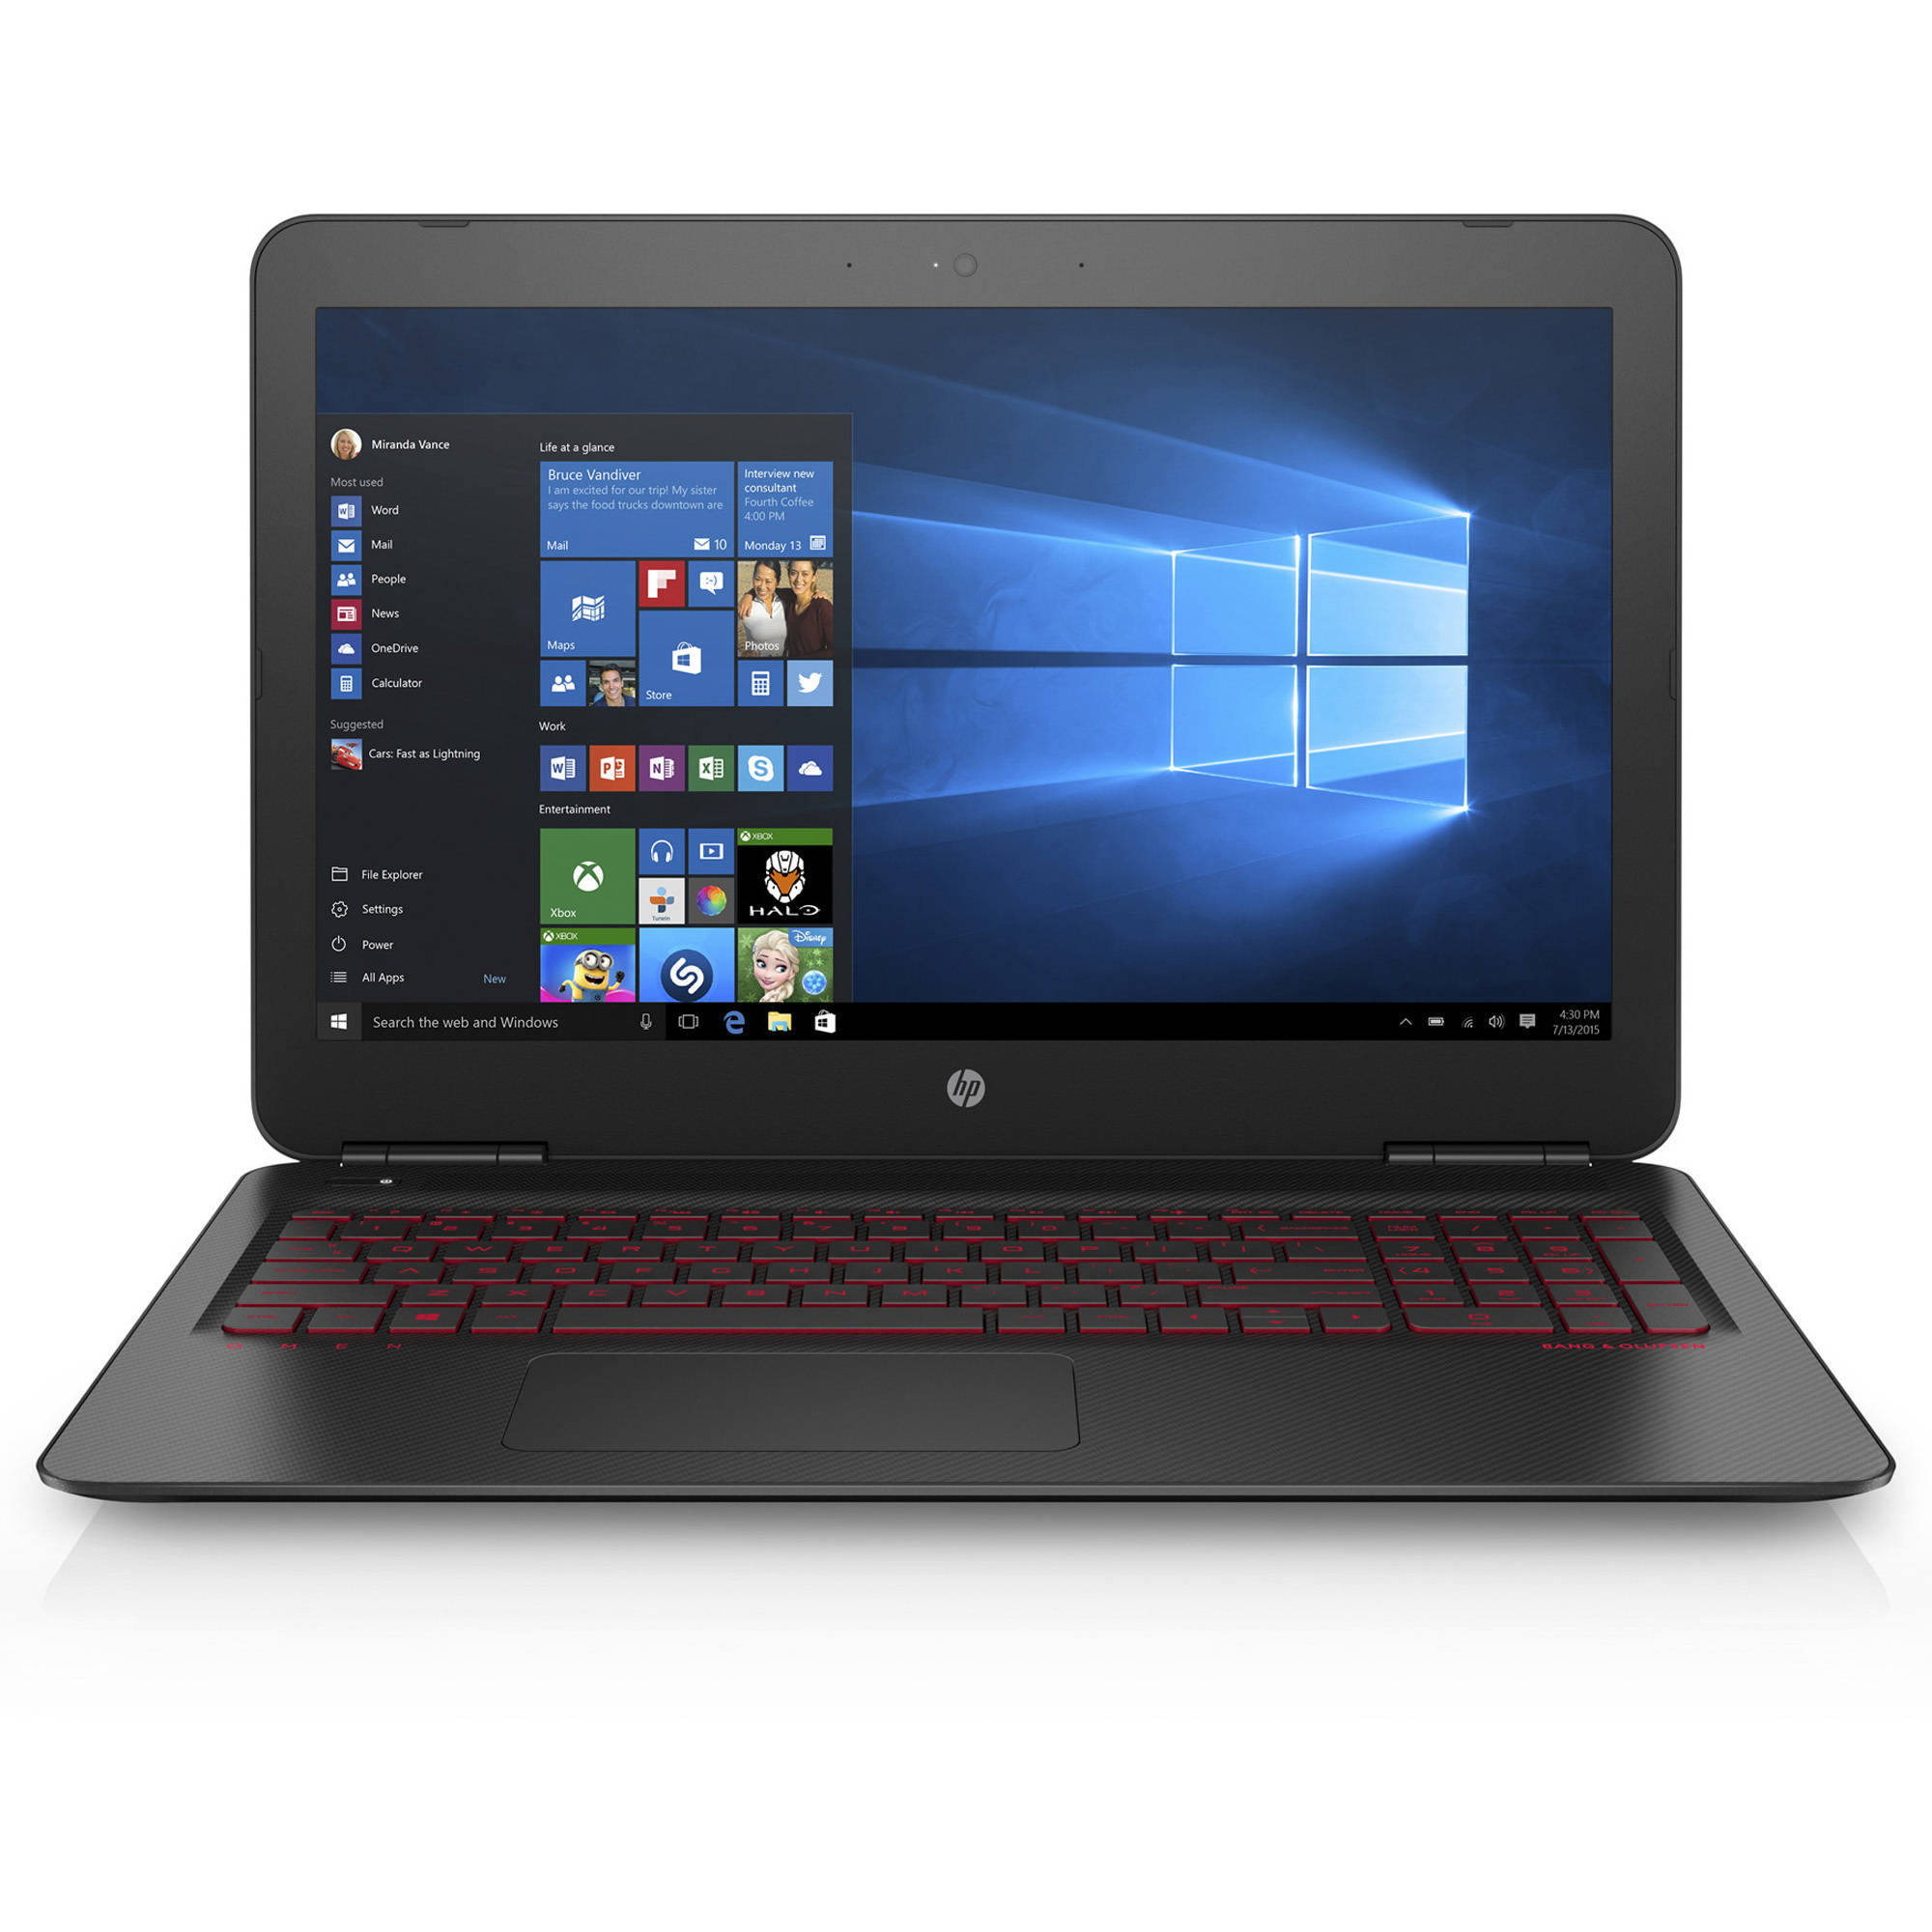 "HP Omen 17-W210Nr 17.3"" Laptop, Windows 10 Home, Intel Core i7-7700HQ"